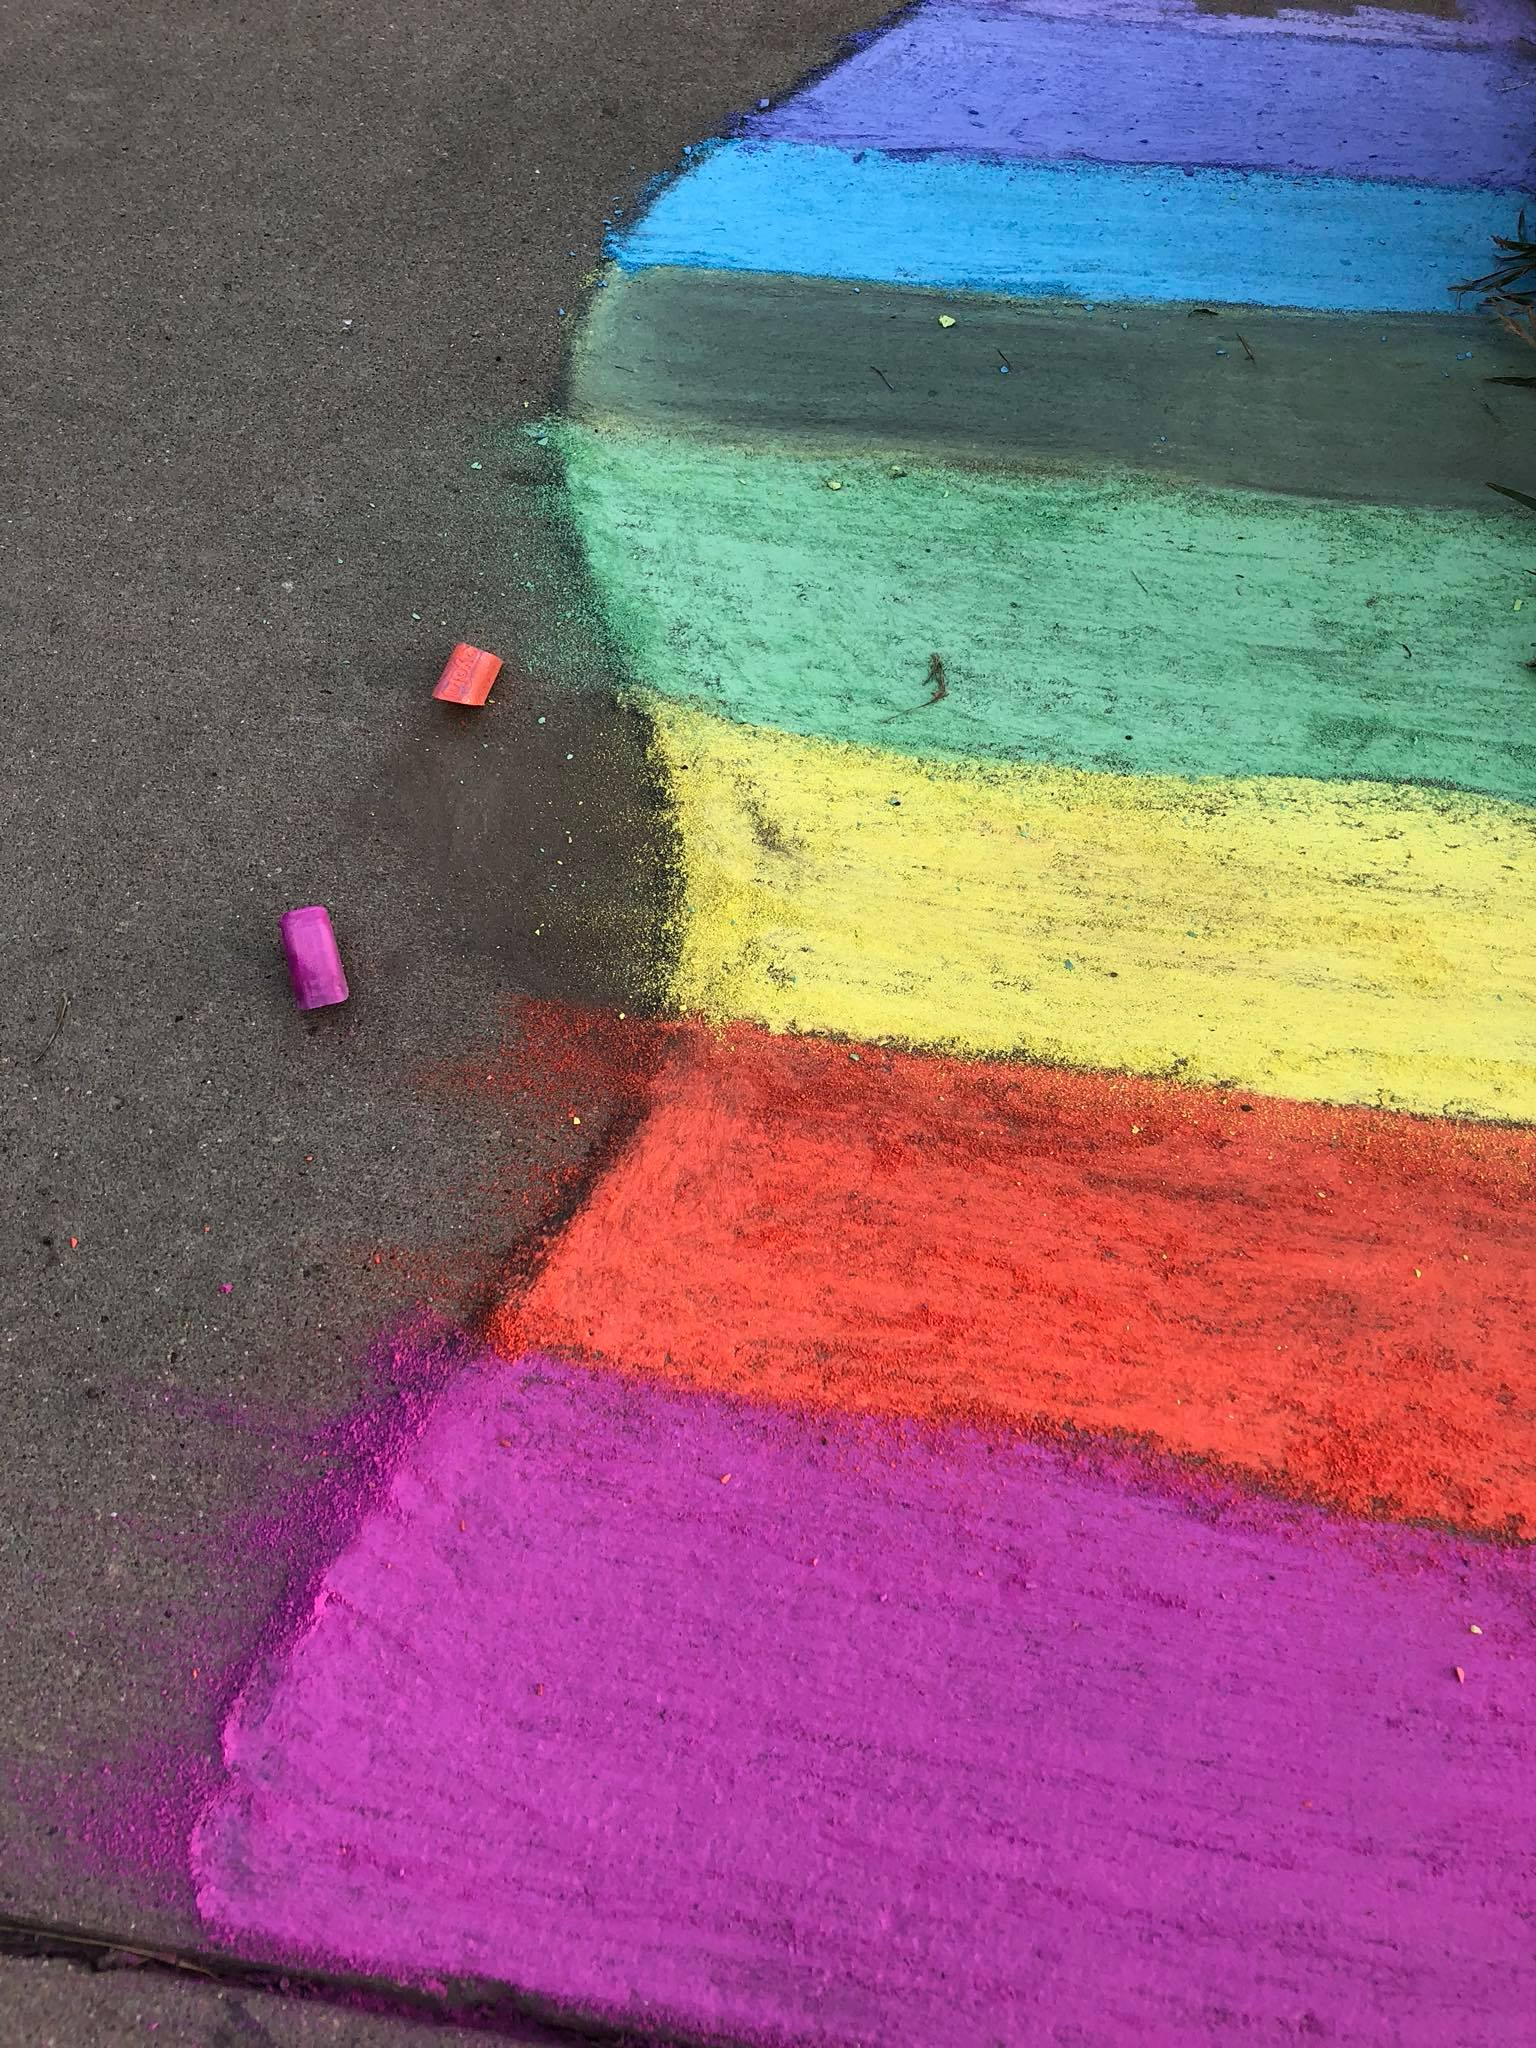 On the Mount Pleasant campus sidewalk, a rainbow is chalked vibrantly